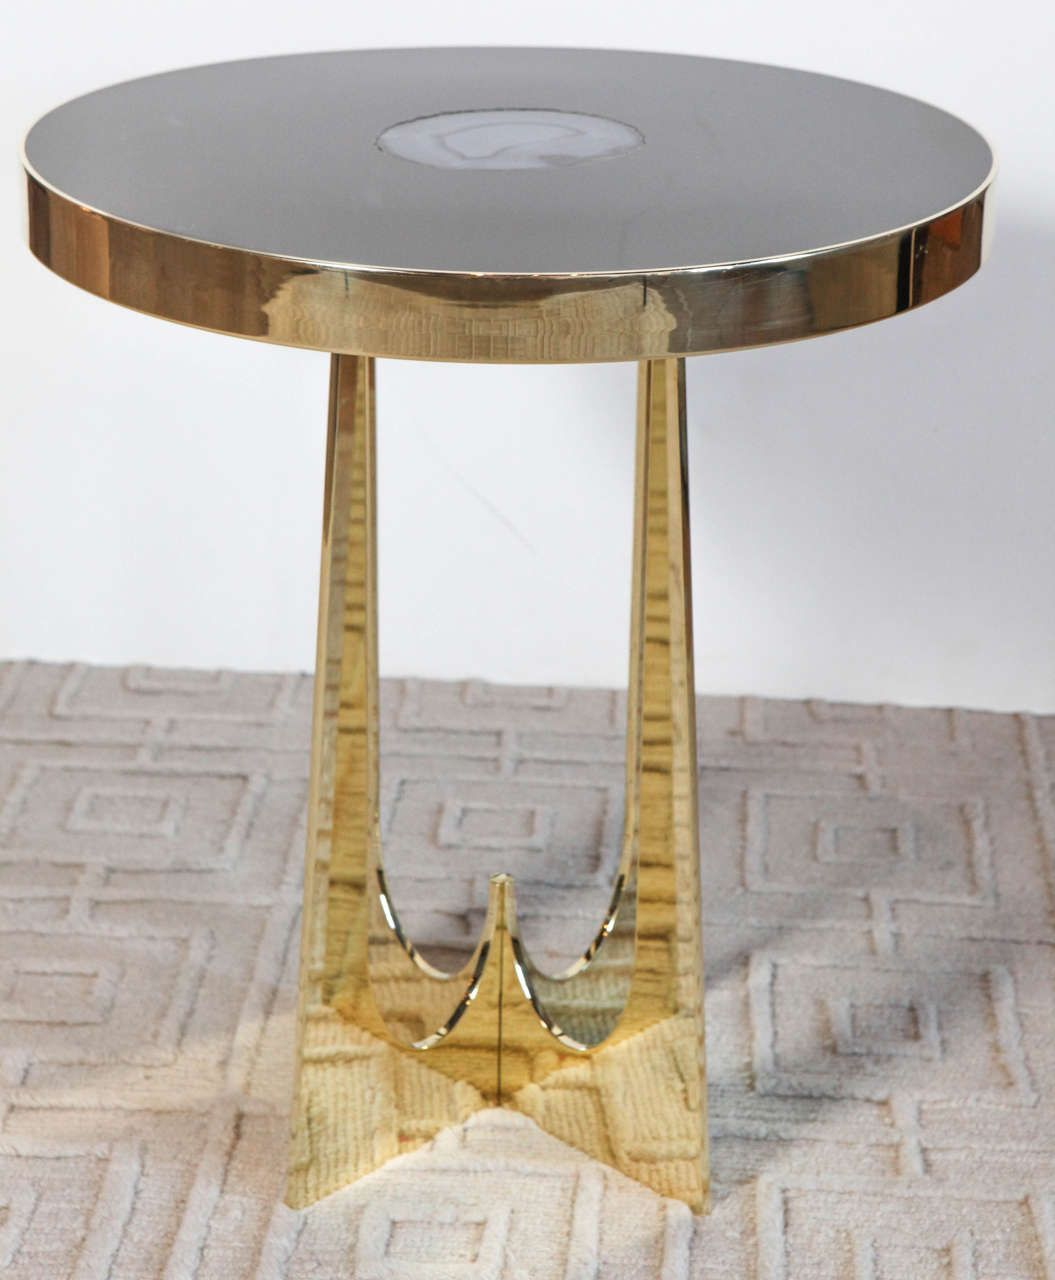 Exceptional Brass And Resin Side Table With An Agate Designed By Adam Hebb, USA